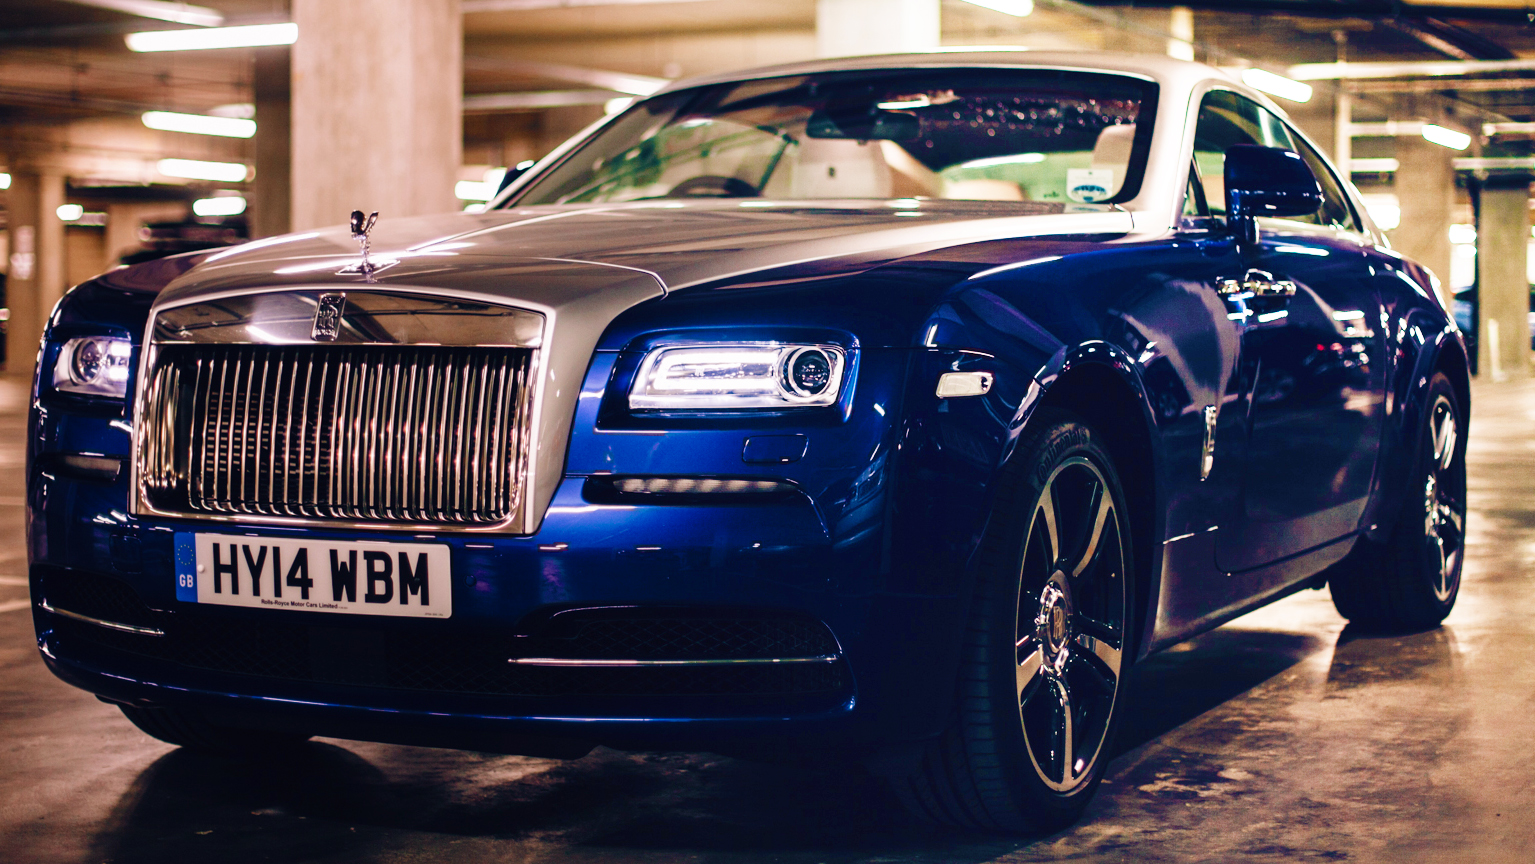 Video: Rolls-Royce Wraith: Silent running